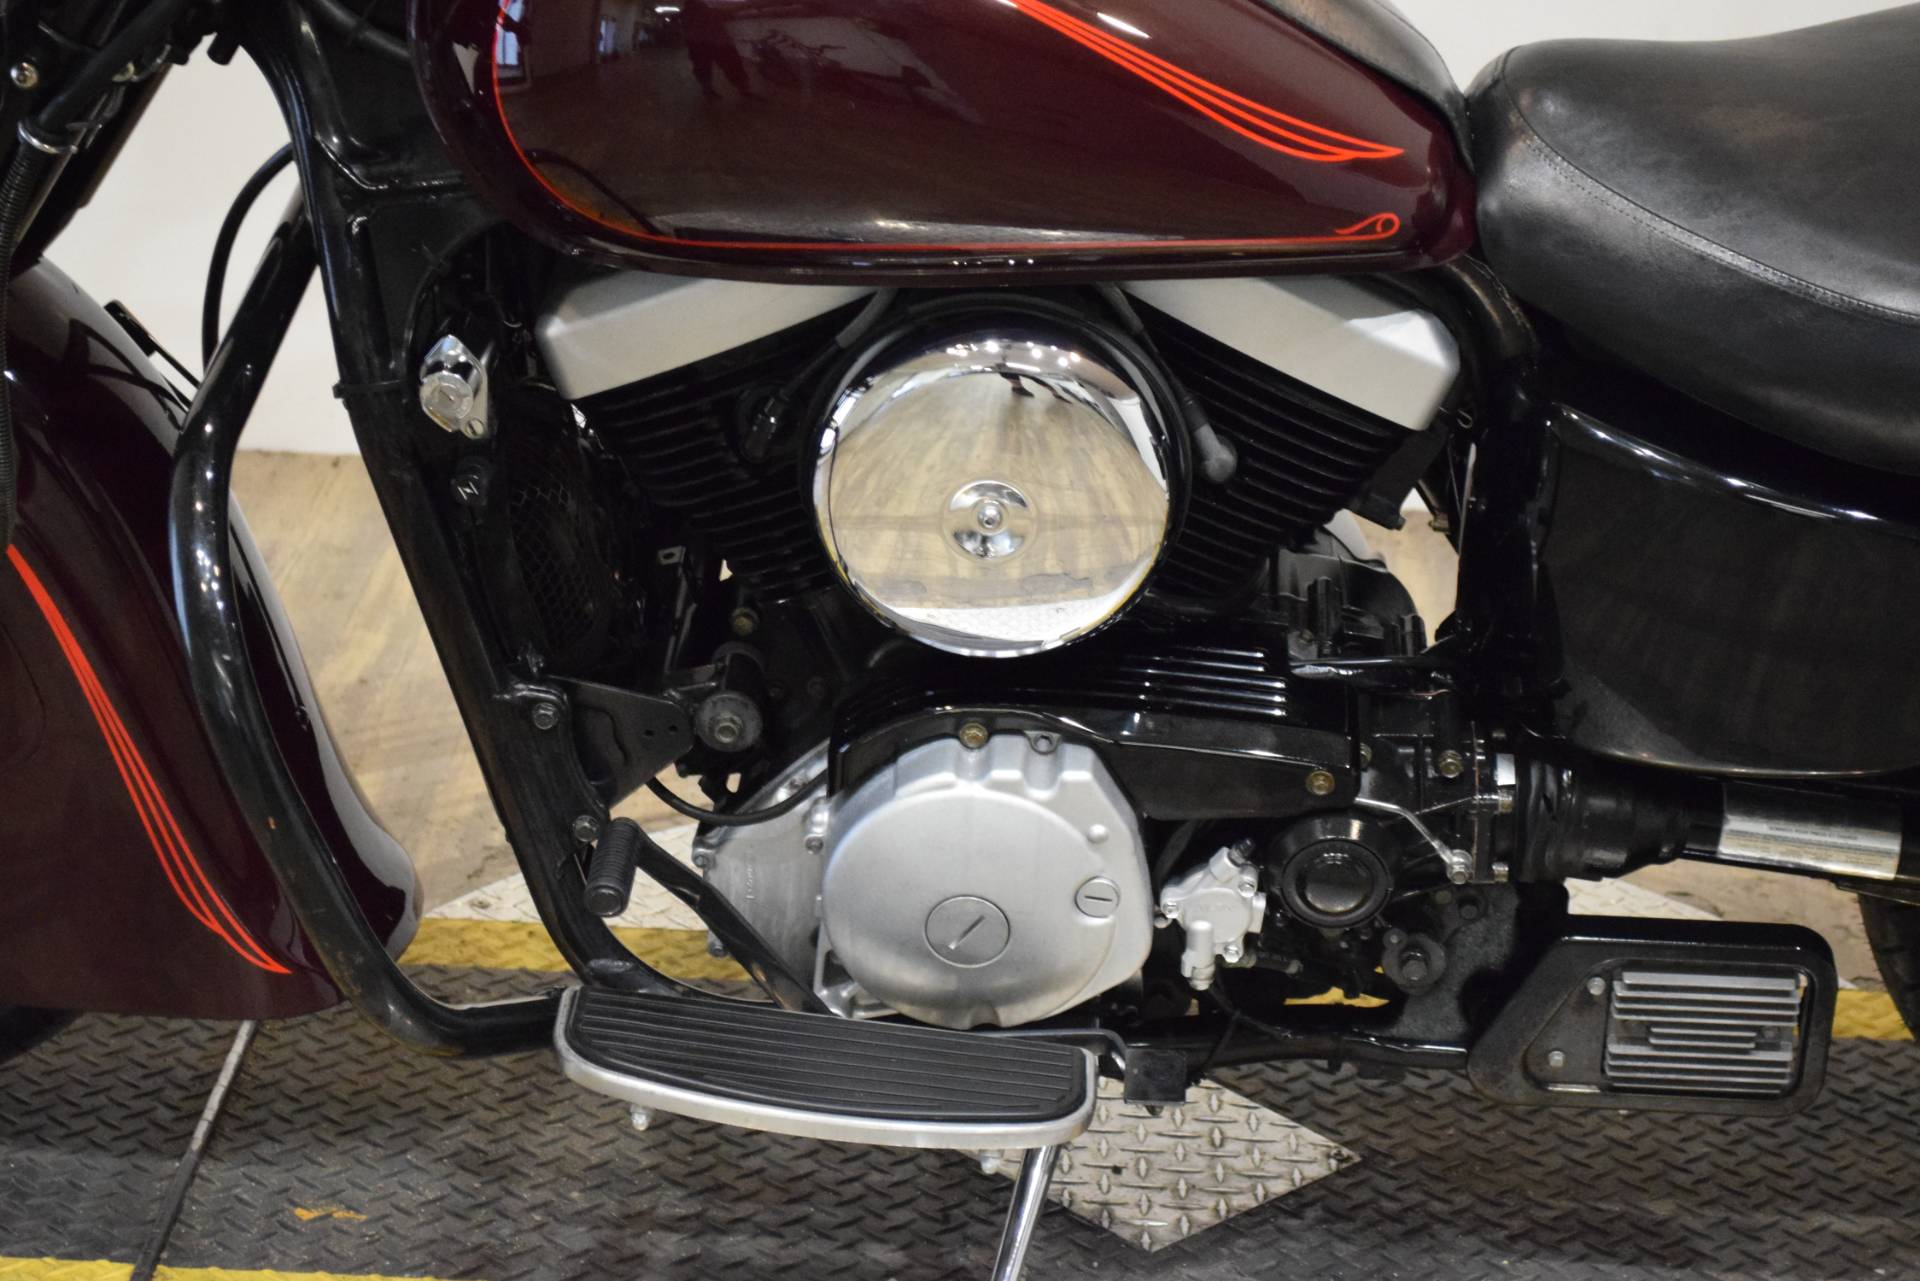 1999 Kawasaki Vulcan Drifter 1500 in Wauconda, Illinois - Photo 18